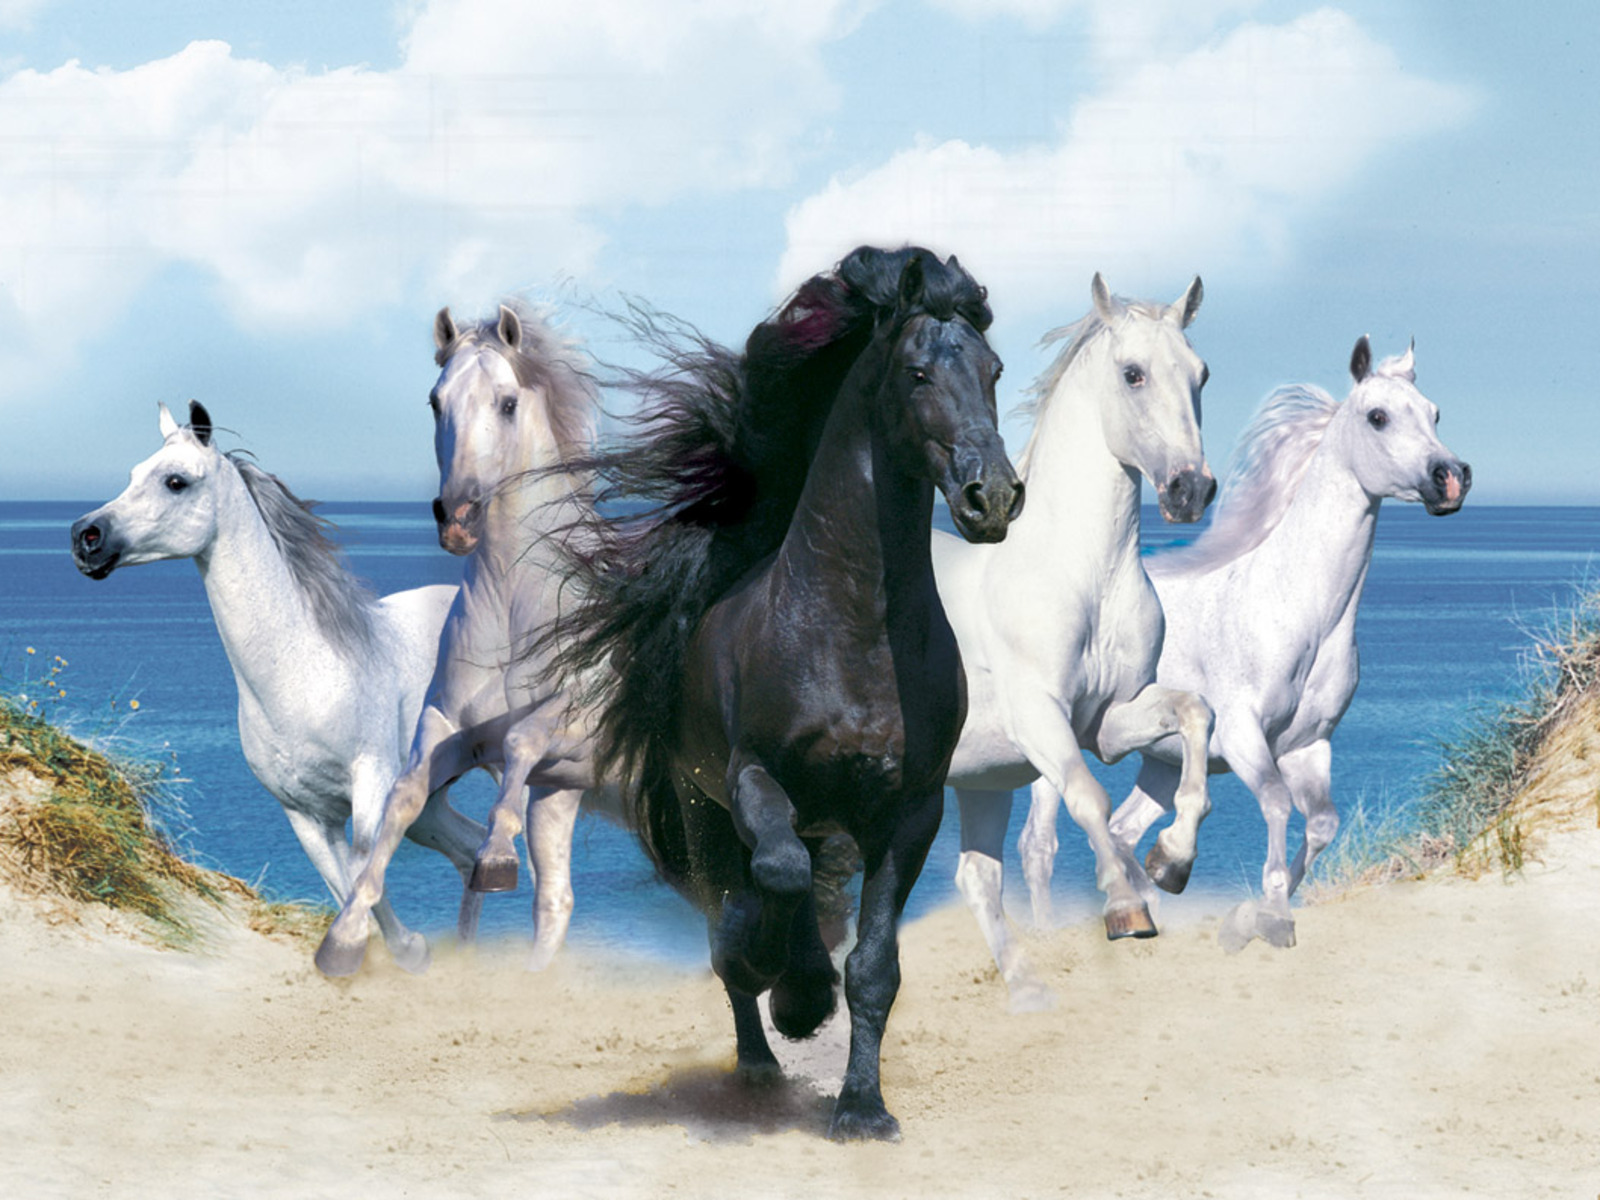 Galloping on the strand